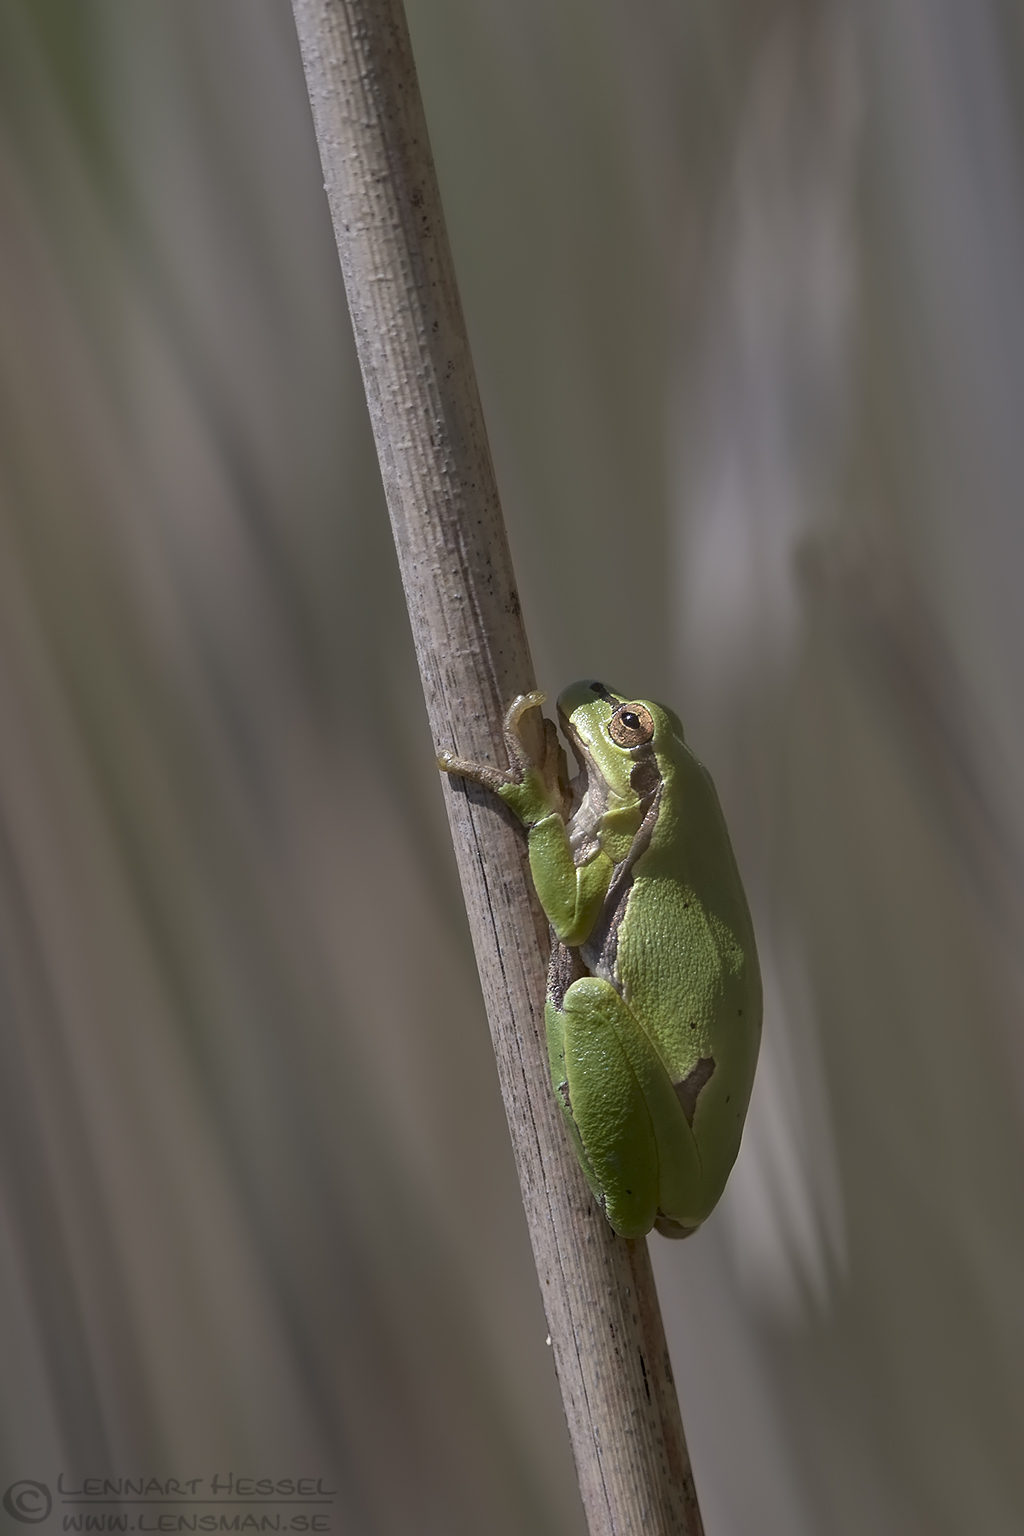 European Tree Frog Bulgaria 2016